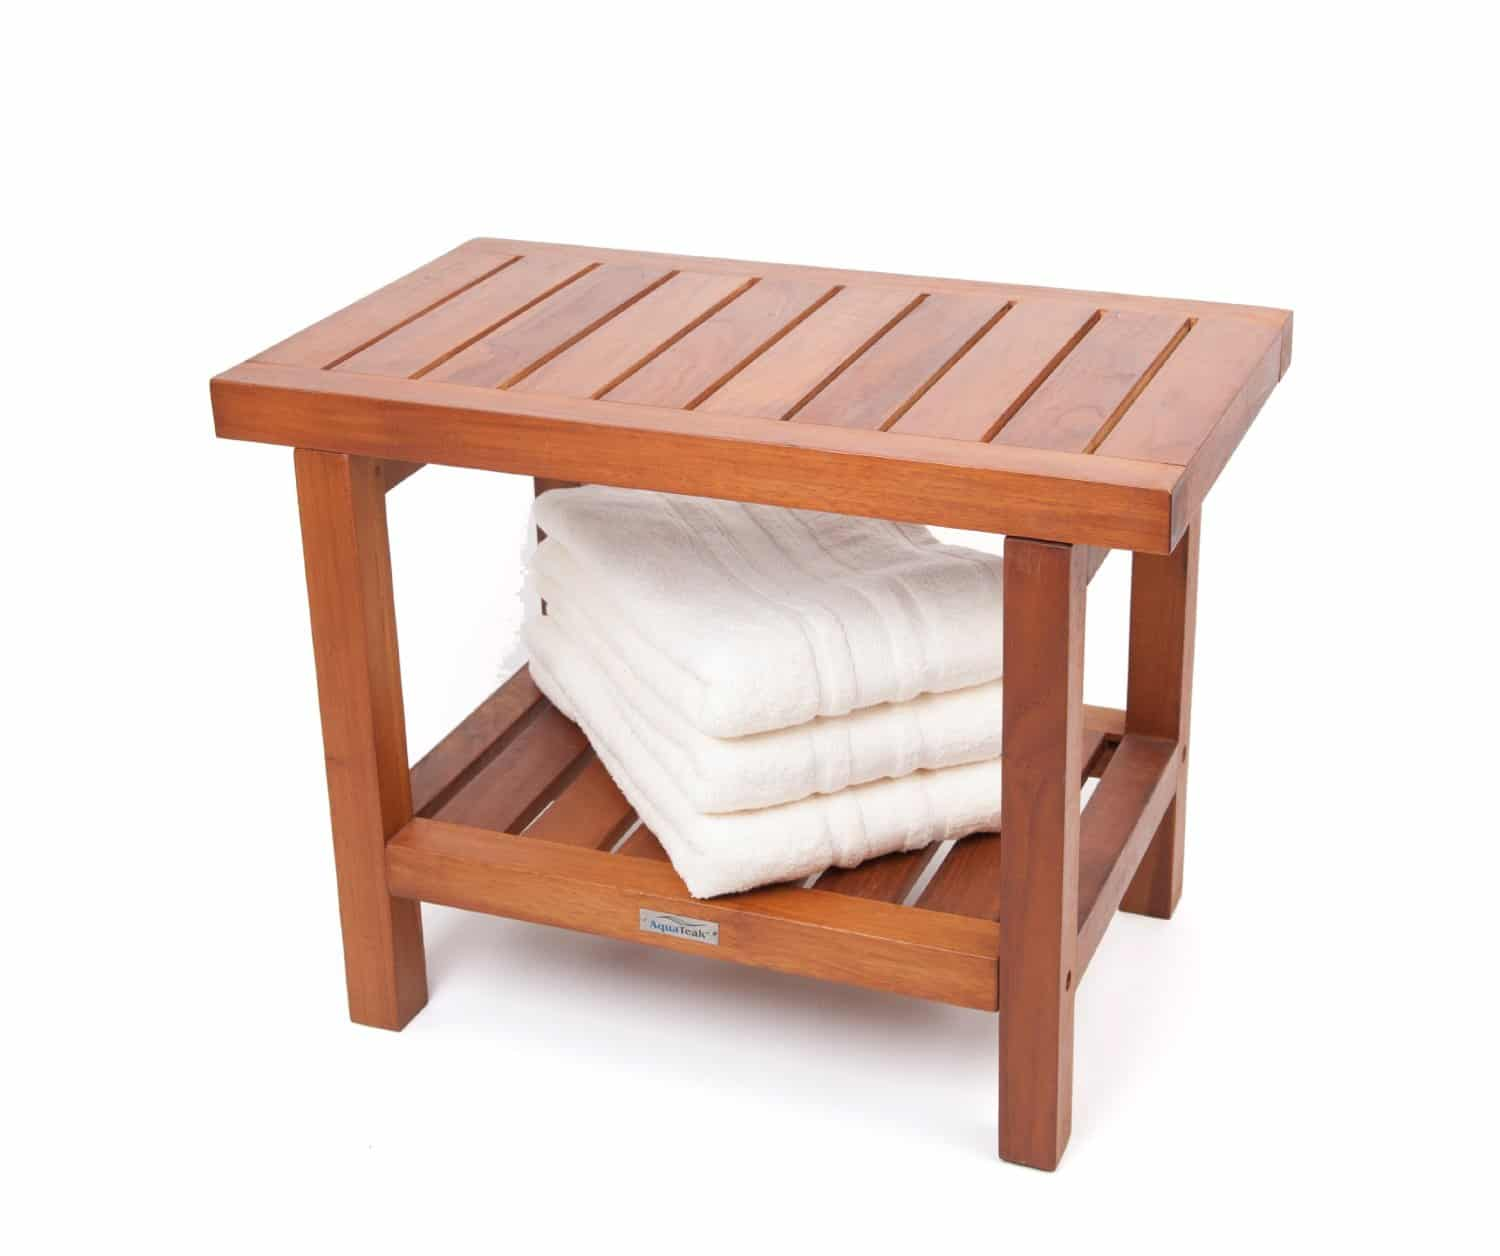 shower chair vs bench arm walmart double asian teak stool or patio